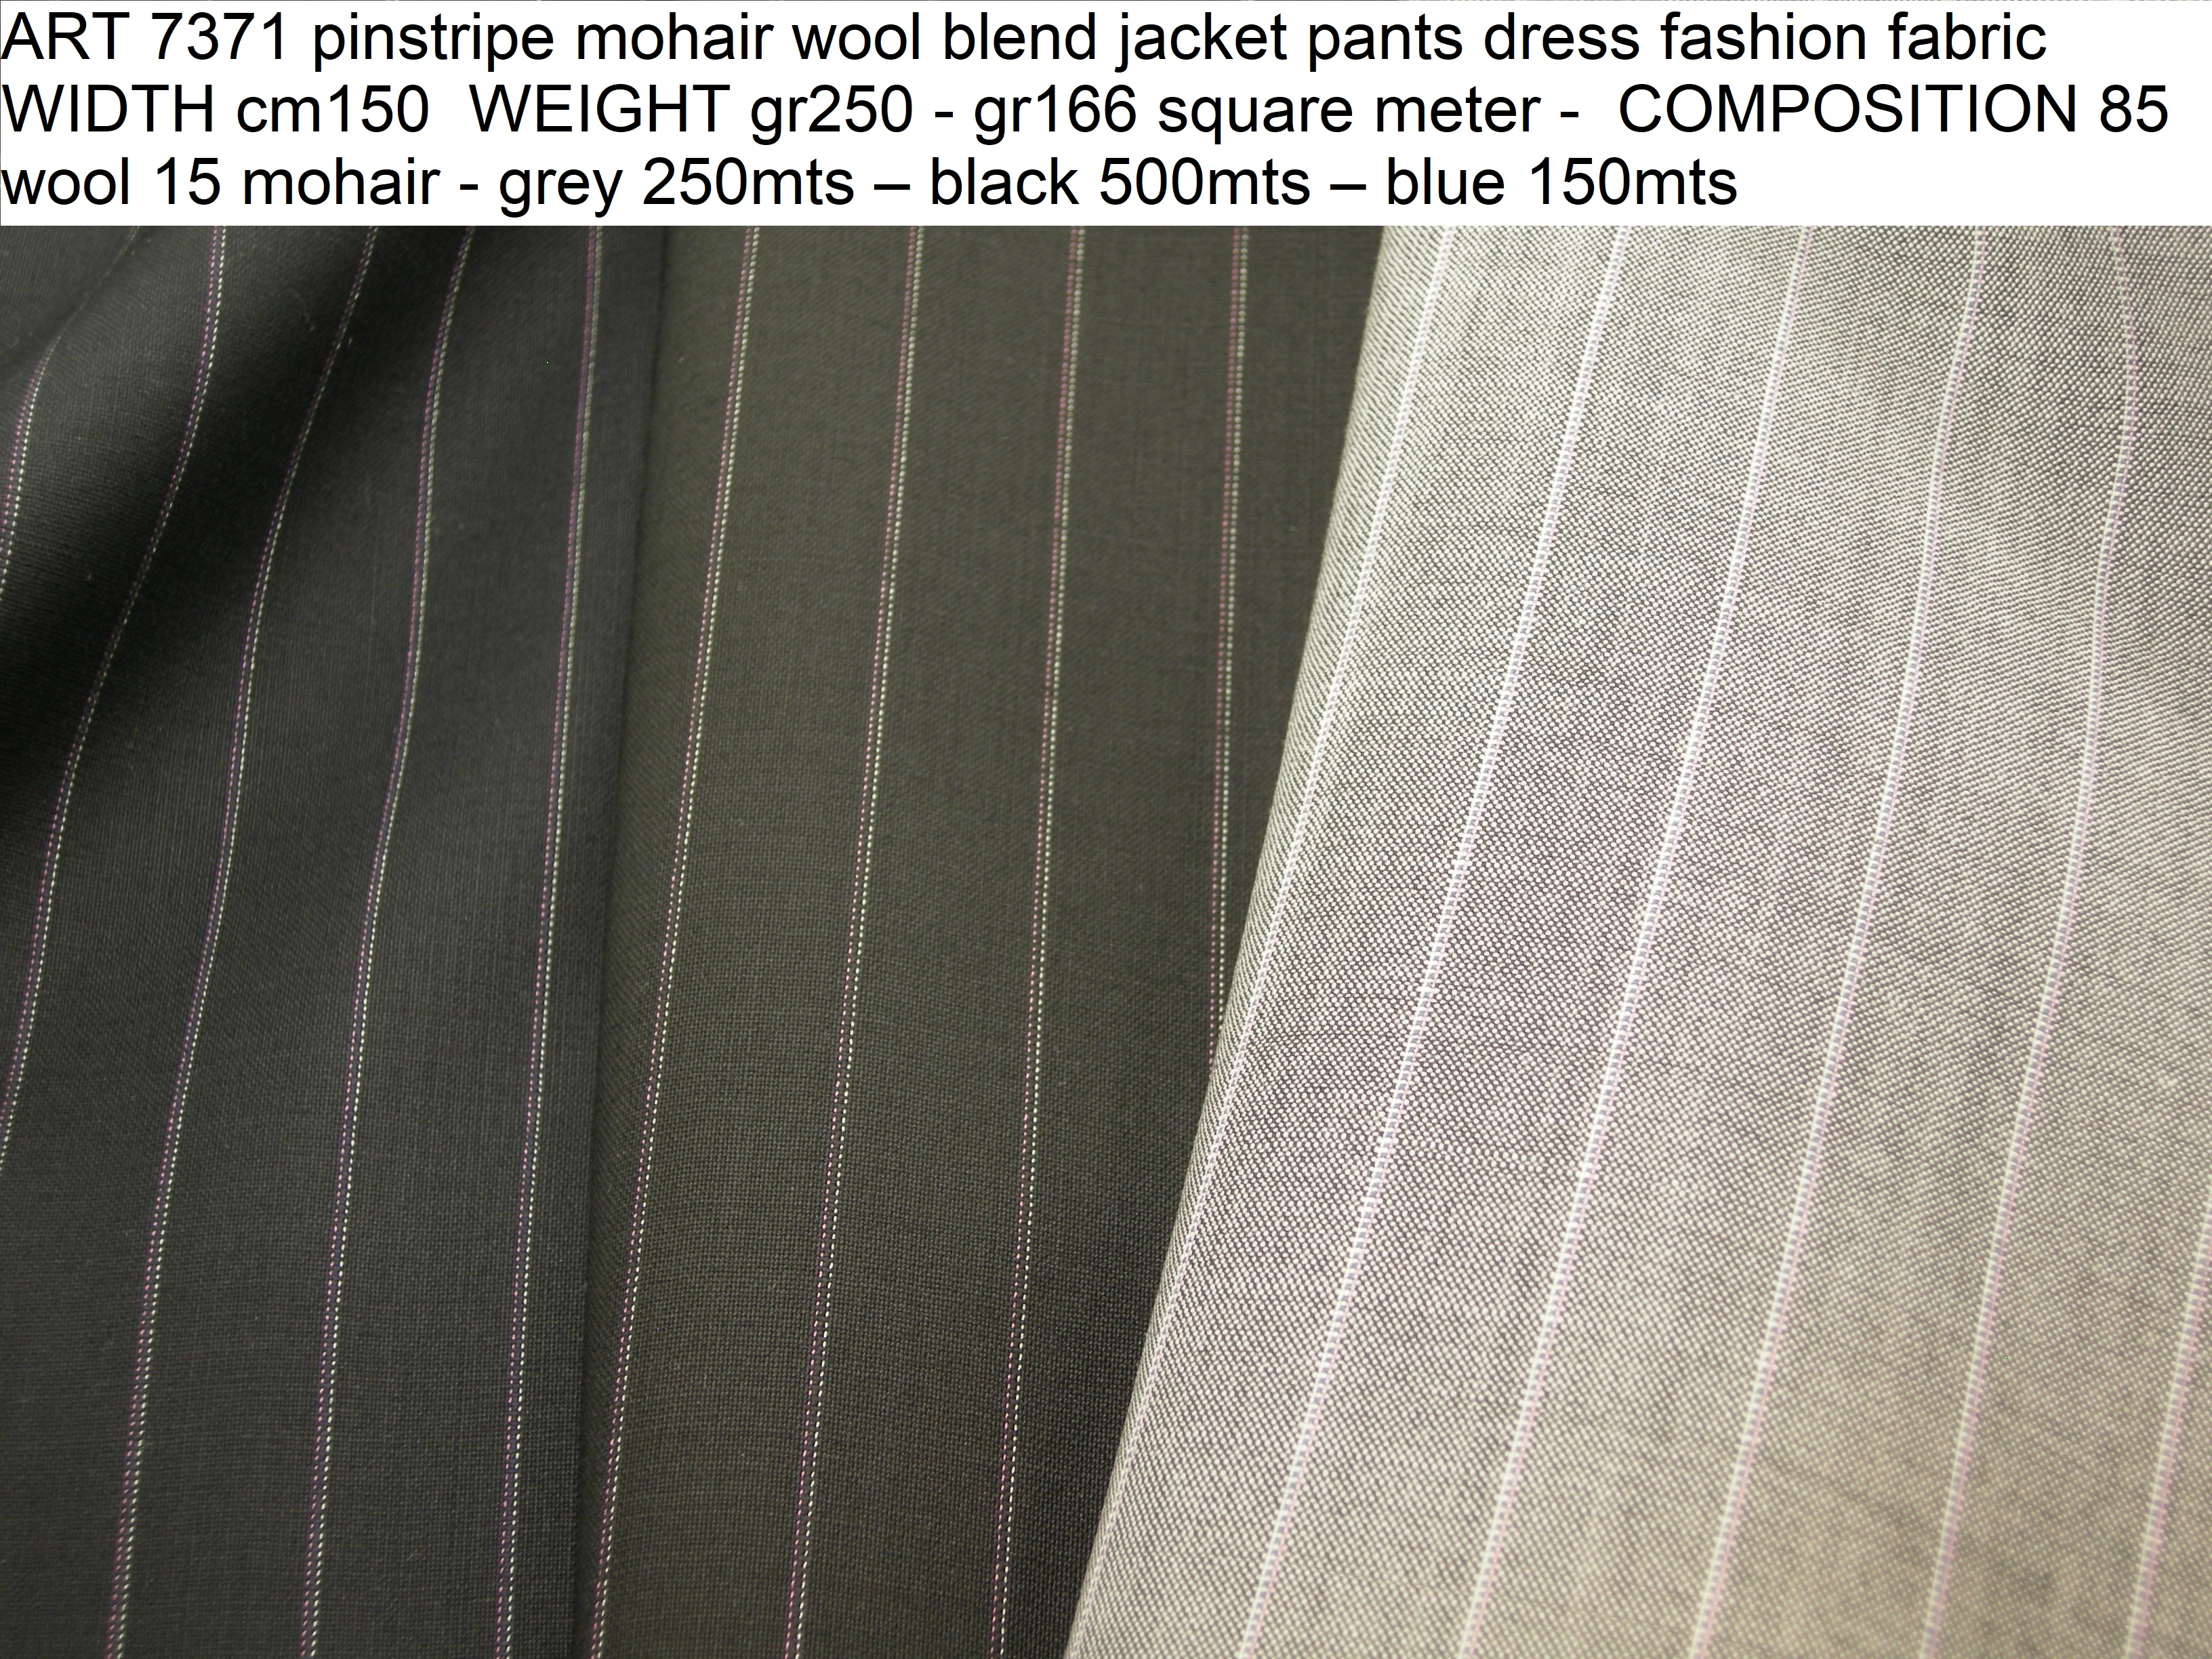 ART 7371 pinstripe mohair wool blend jacket pants dress fashion fabric WIDTH cm150 WEIGHT gr250 - gr166 square meter - COMPOSITION 85 wool 15 mohair - grey 250mts – black 500mts – blue 150mts